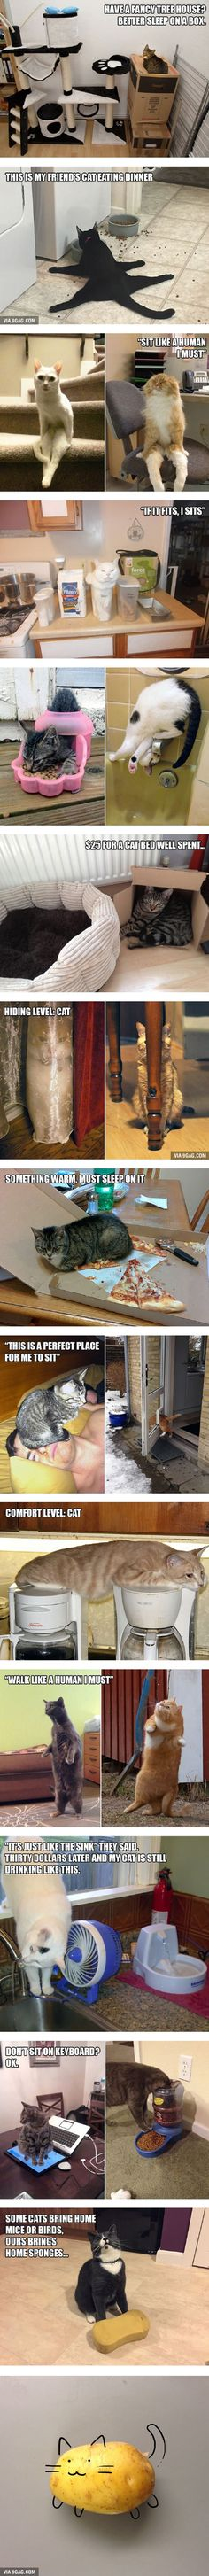 20 Funny Examples of Cat Logic - 9GAG